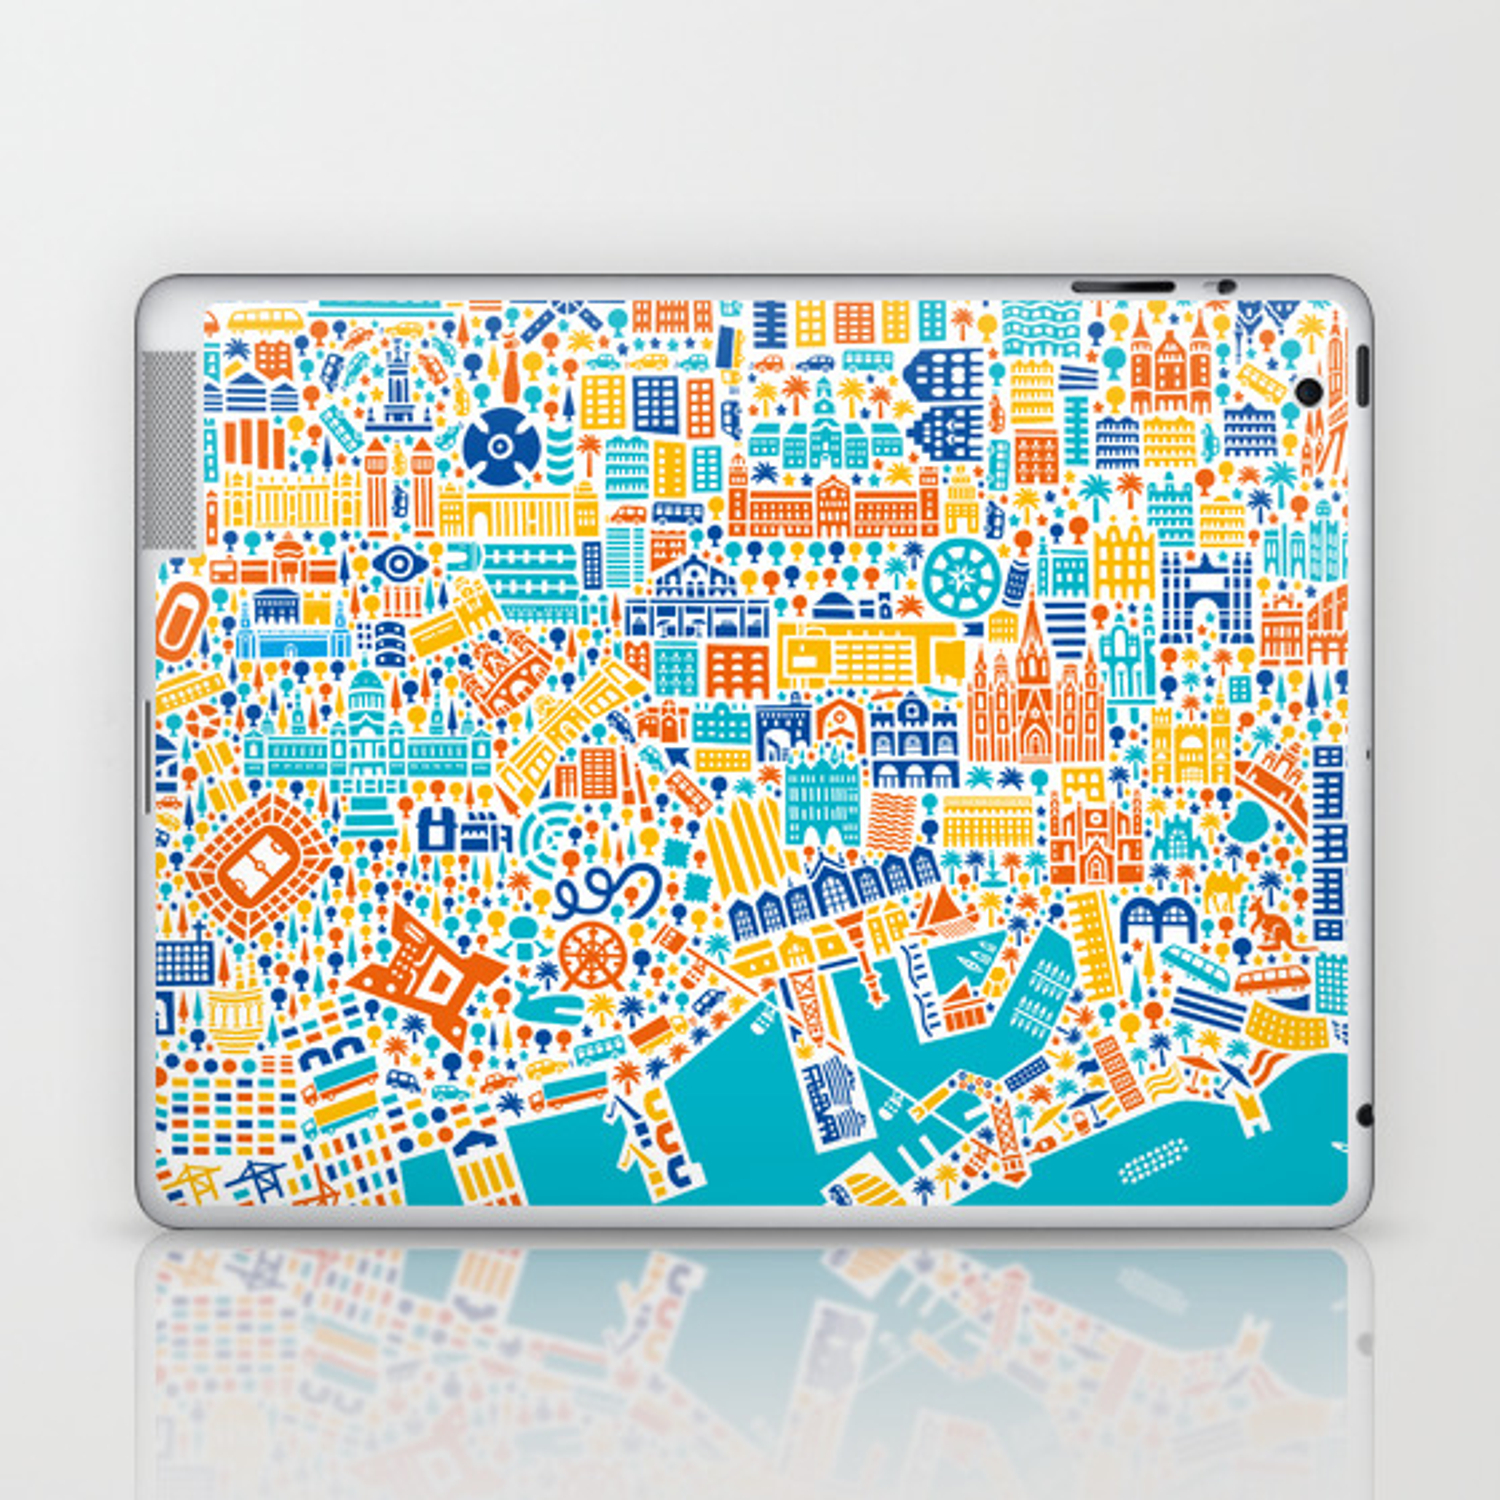 Vianina Barcelona City Map Poster Laptop & iPad Skin by vianina on map of kiev city, map of zhuhai city, map spain city, map of malta city, map of danang city, map of ulan bator city, map of juba city, map of switzerland city, map of bucharest city, map of chiang rai city, map of rio de janeiro city, map of quito city, about barcelona city, map of nagoya city, map of sharjah city, map of toledo city, map of bulawayo city, map of dallas city, map of kunming city, map of queen city,